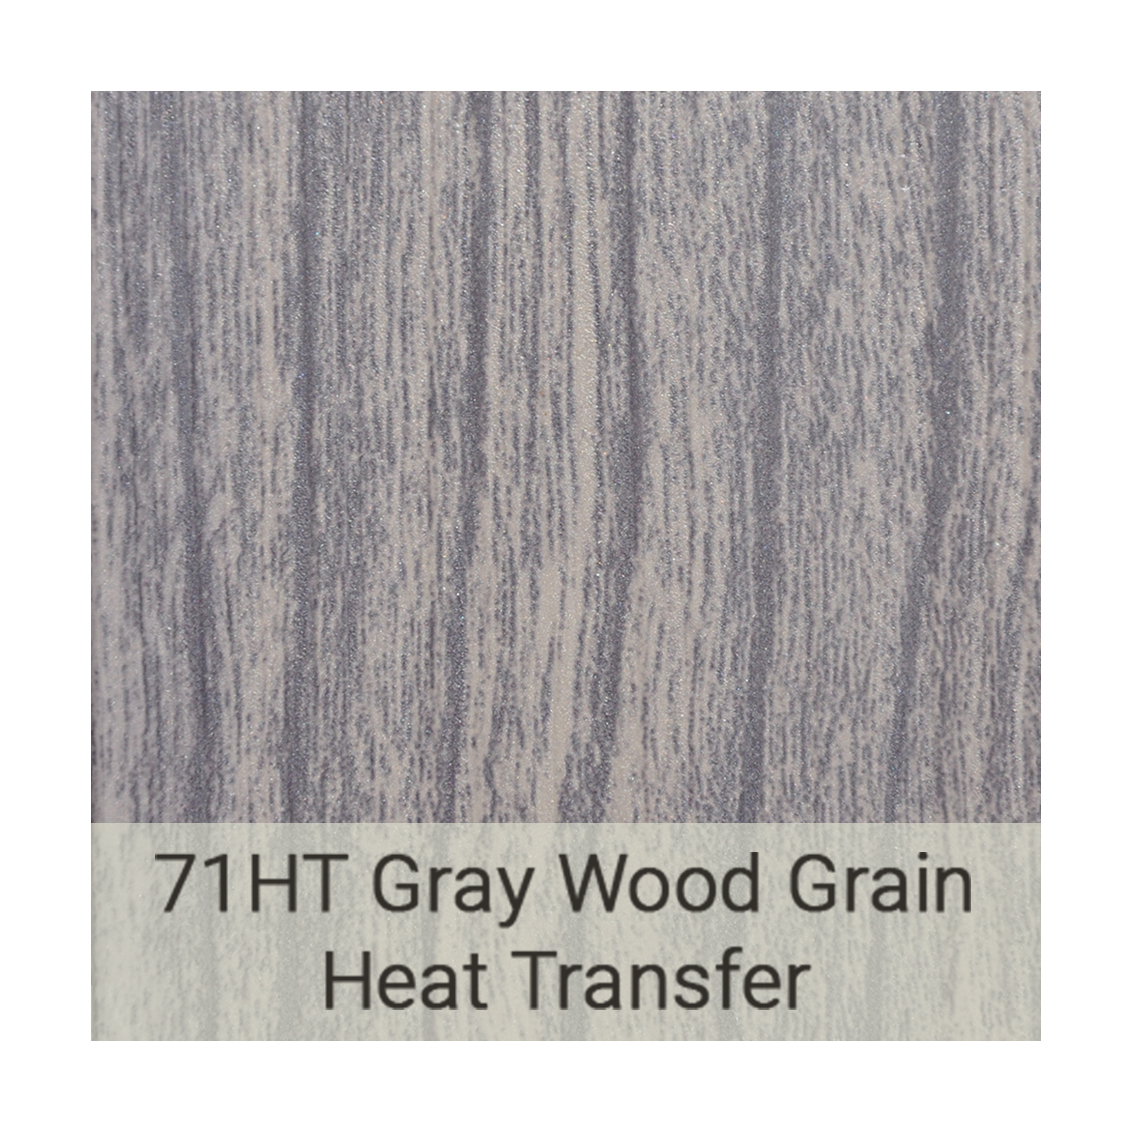 tabletops-71ht-gray-wood-grain-heat-transfer